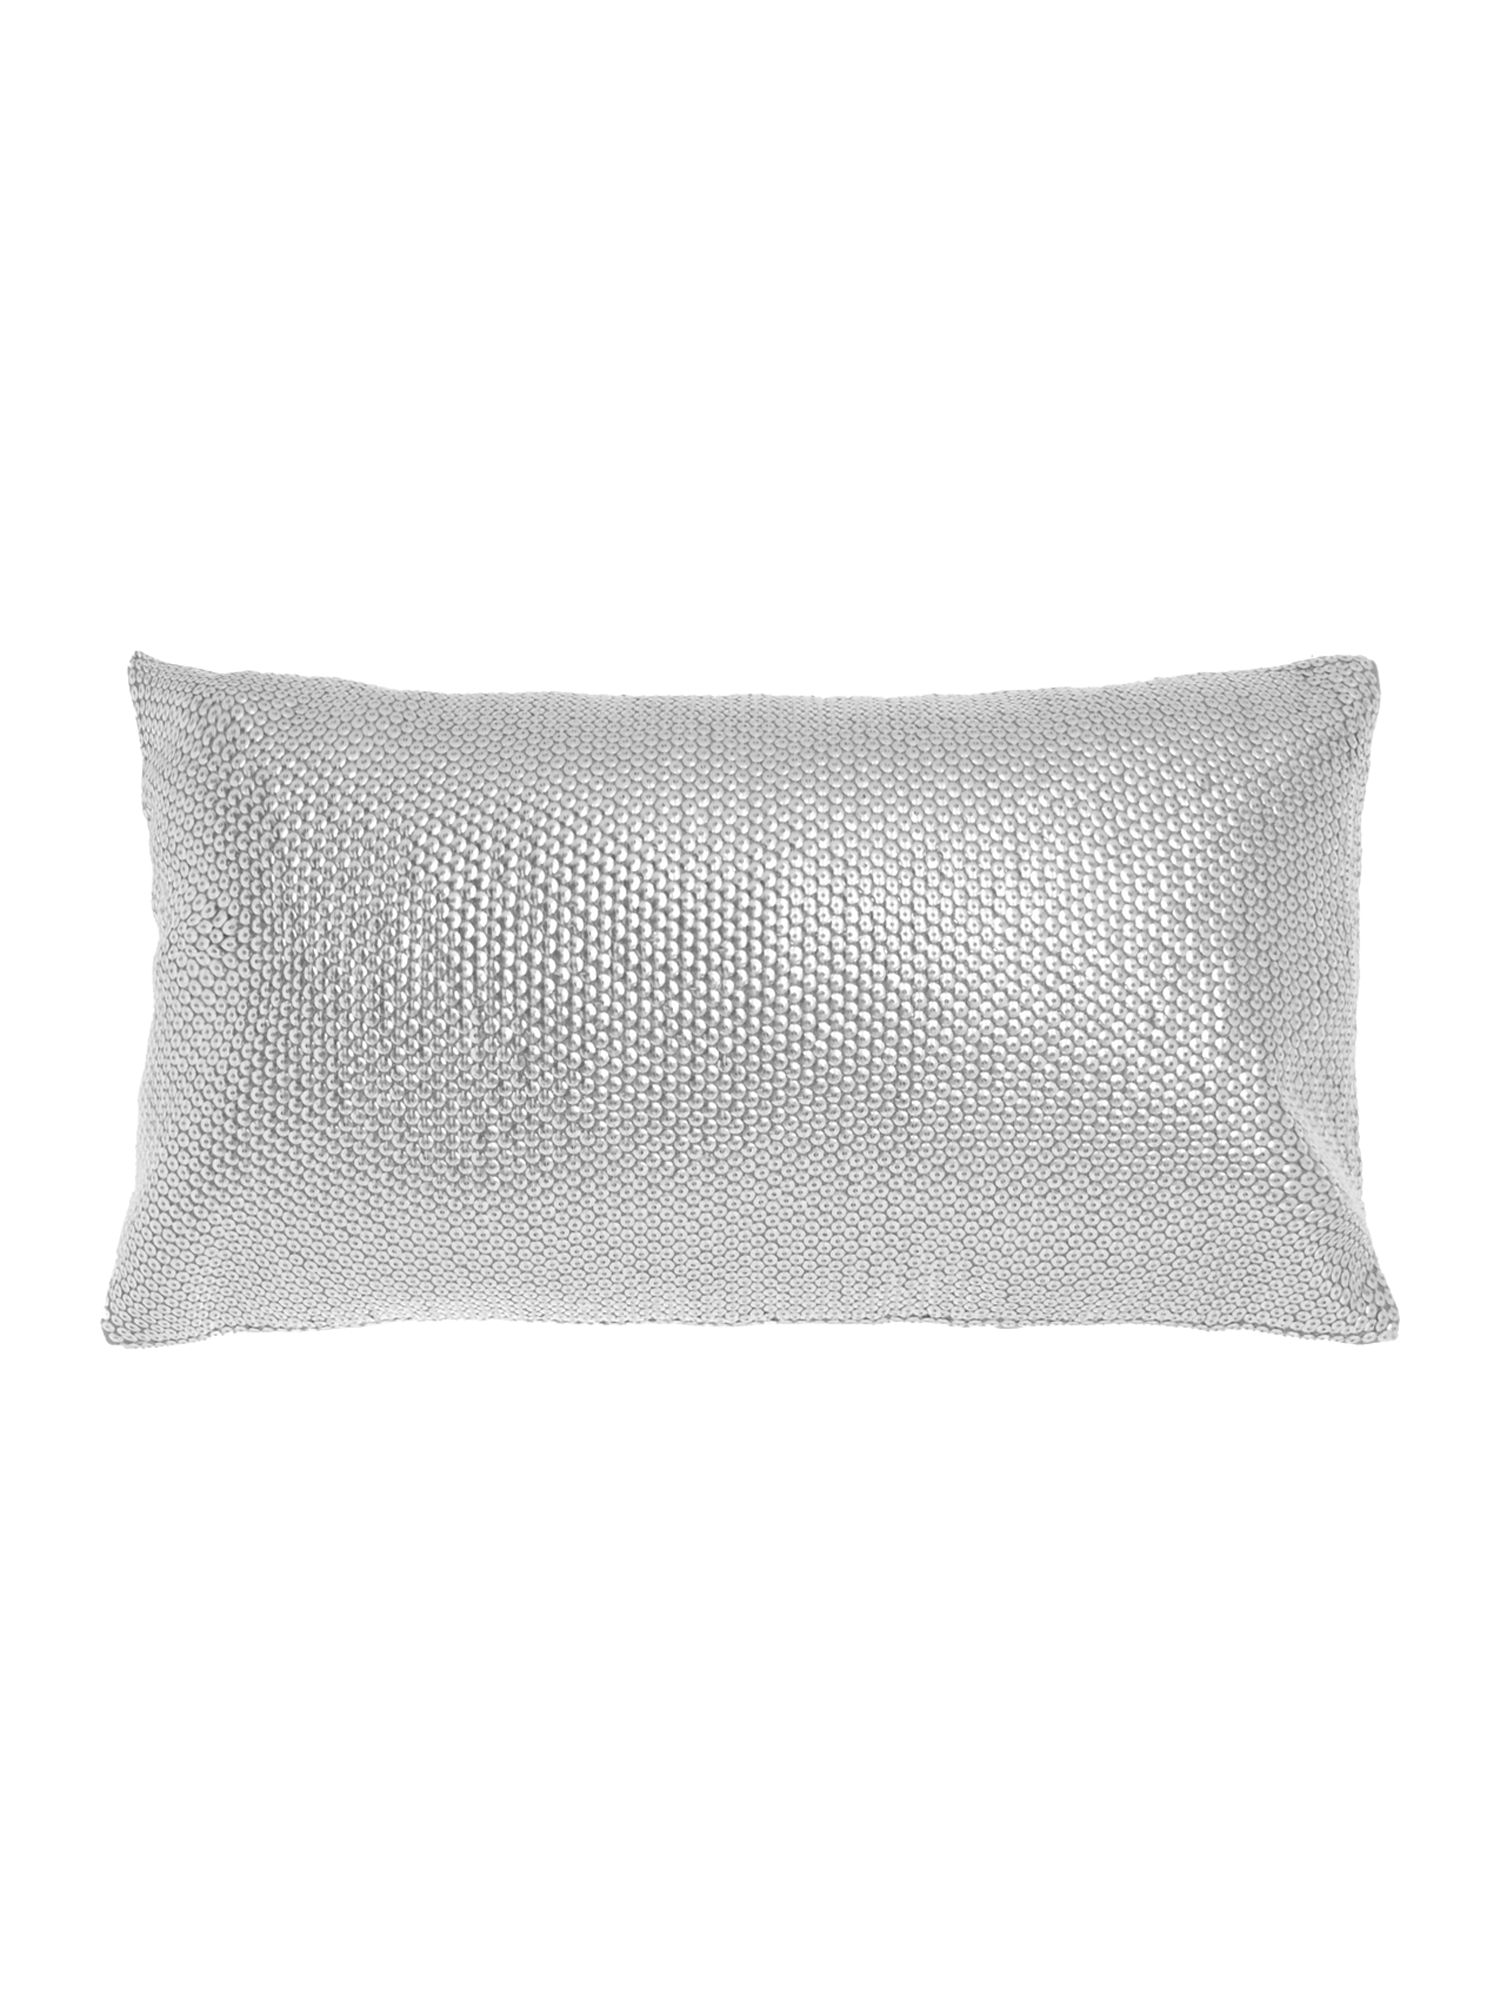 Silver sequin cushion